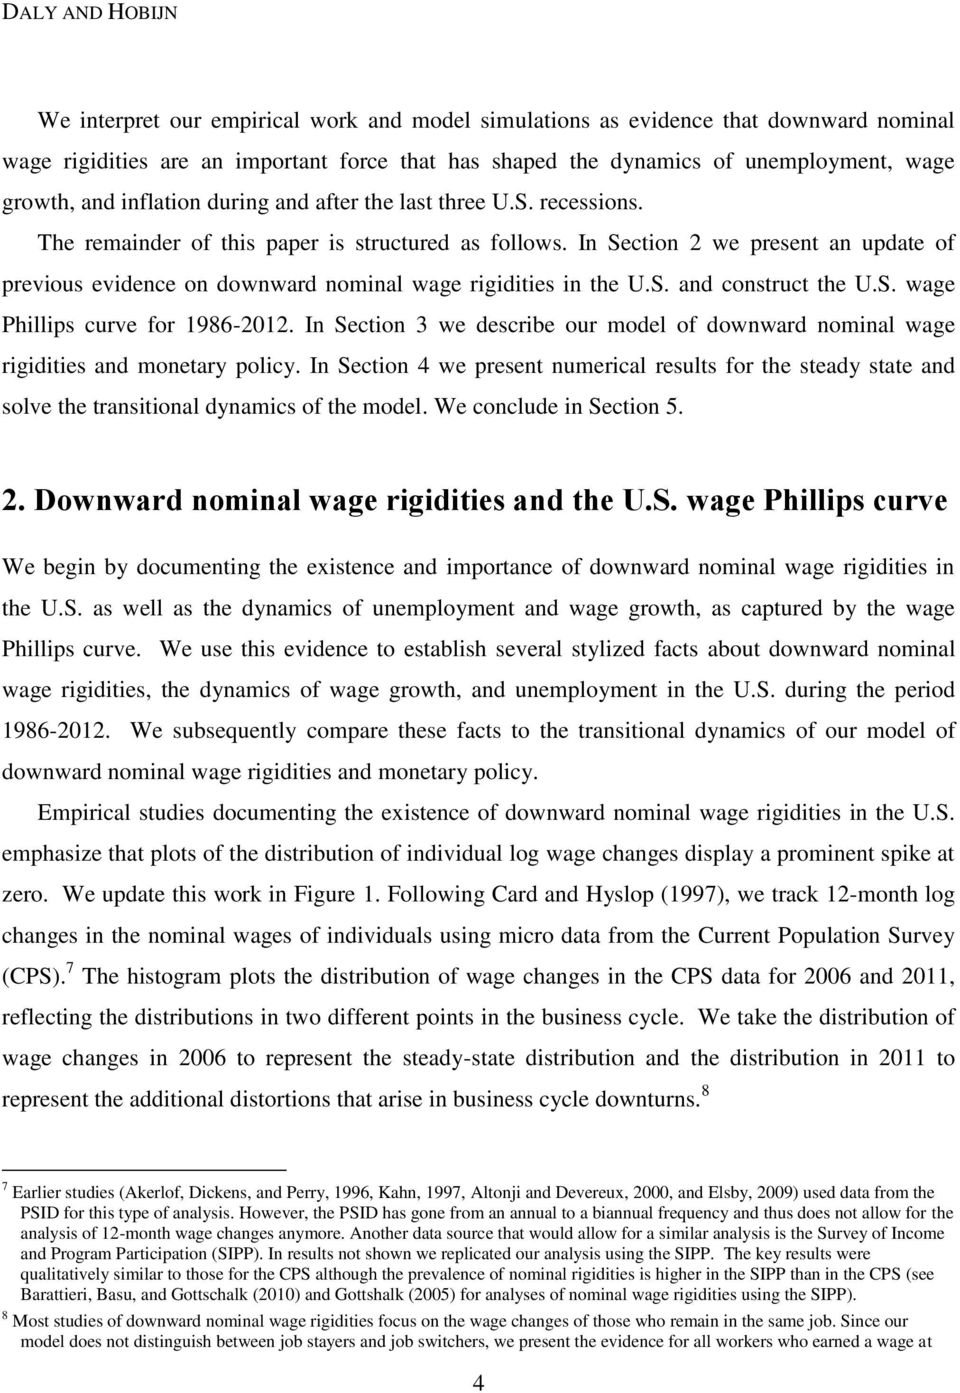 In Section 2 we present an update of previous evidence on downward nominal wage rigidities in the U.S. and construct the U.S. wage Phillips curve for 1986-2012.